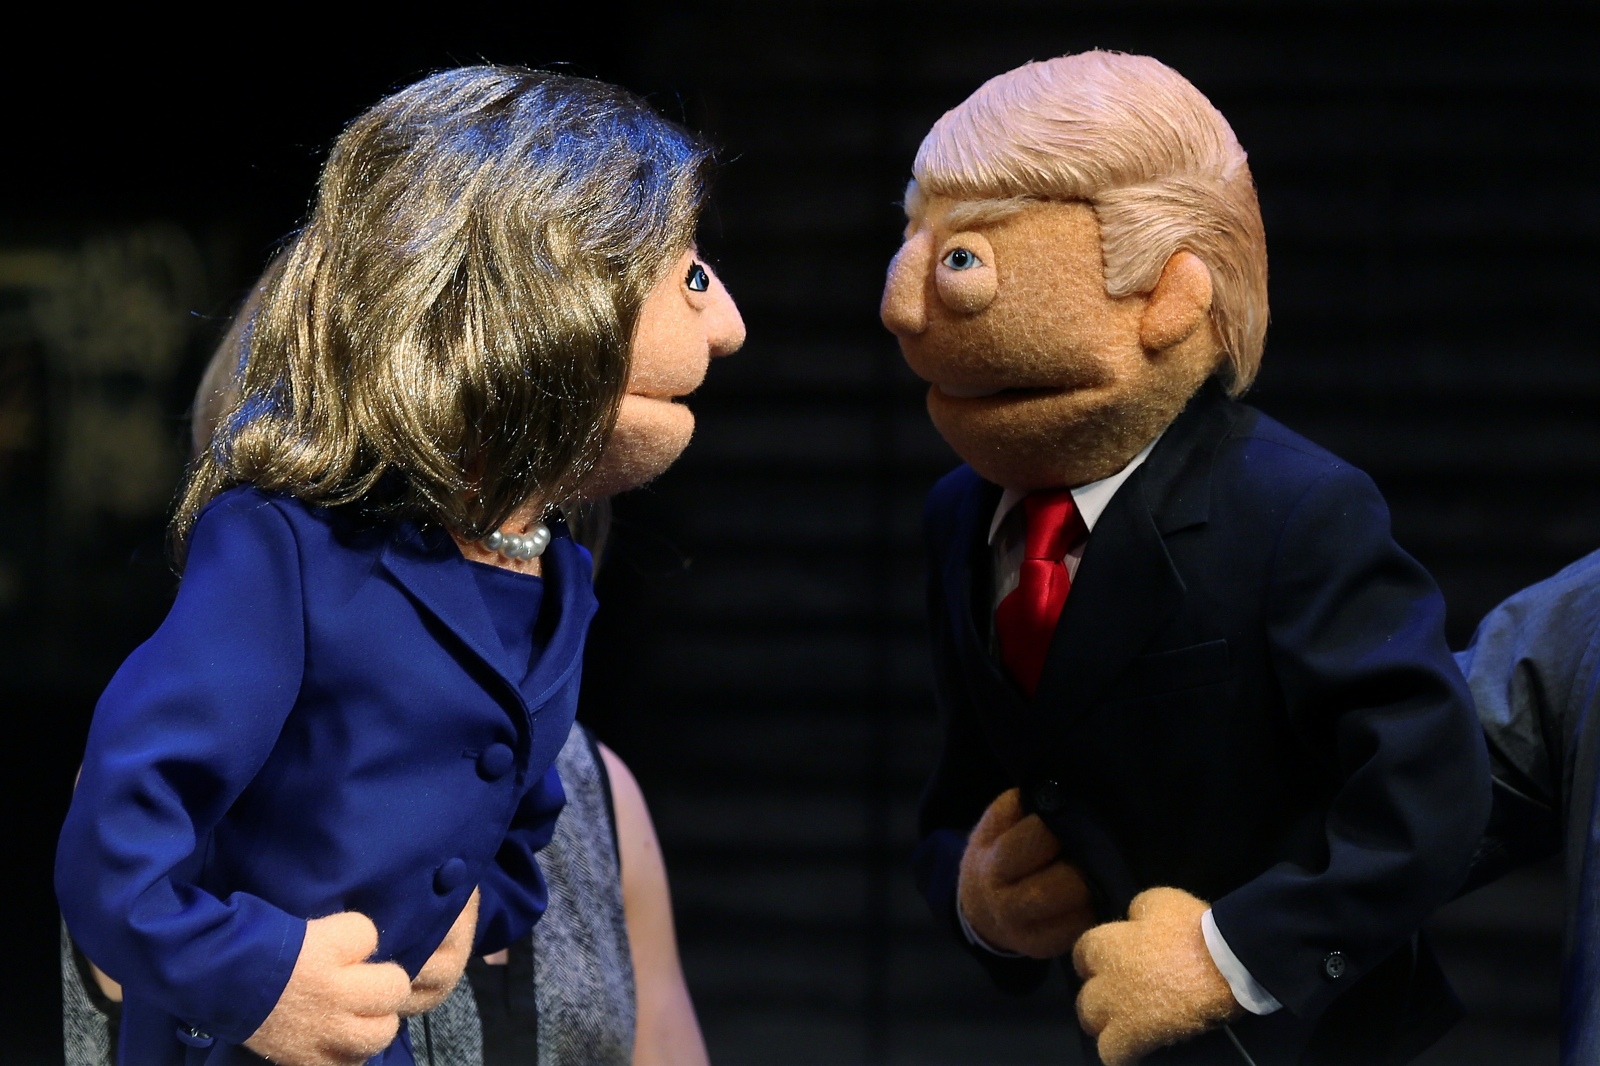 Trump Clinton face off